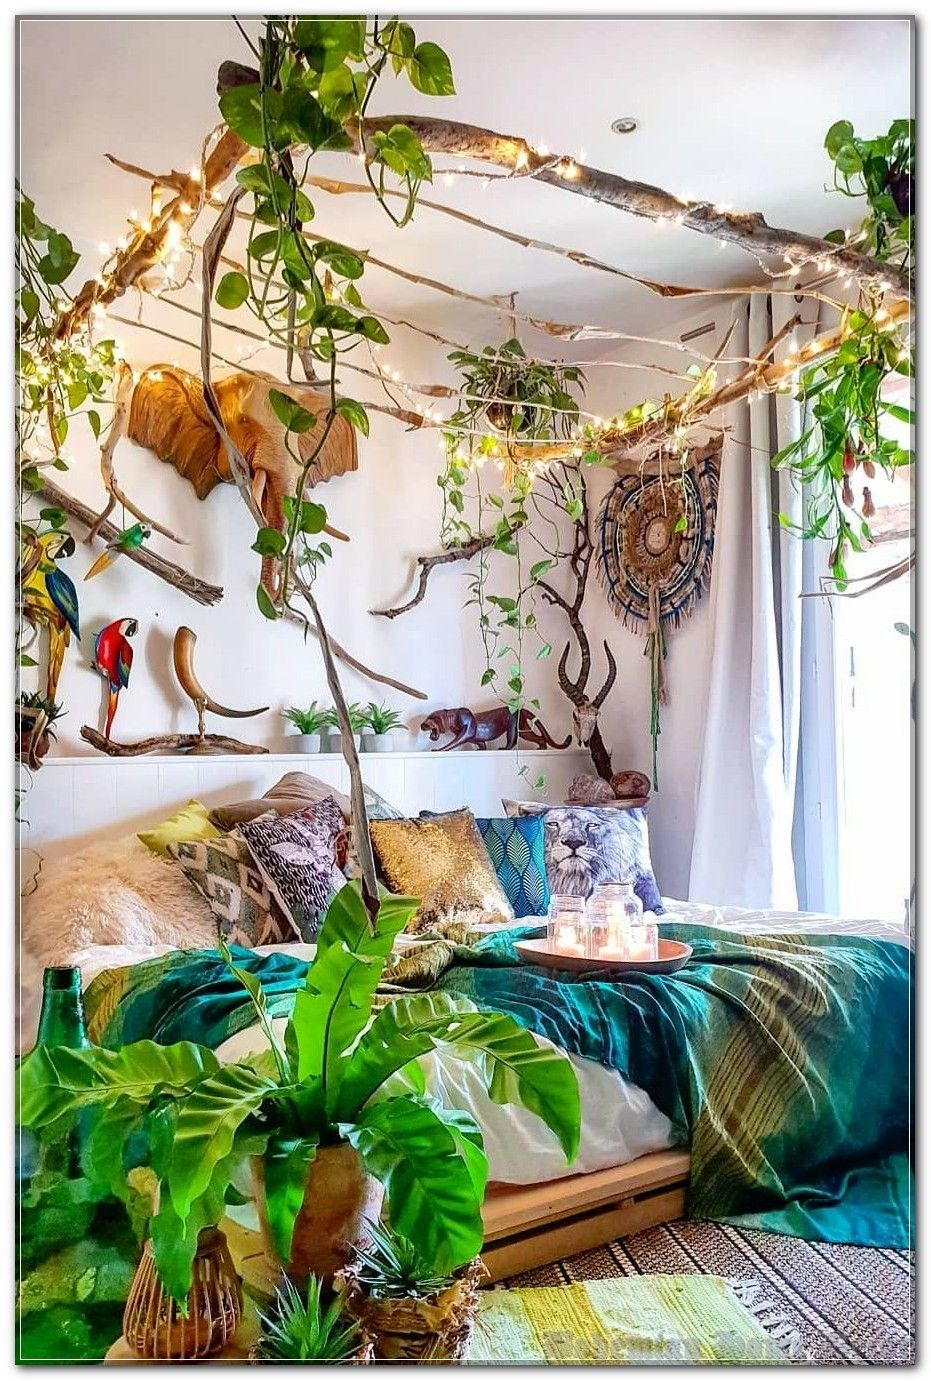 How To Be In The Top 10 With Bohemian Home Decor